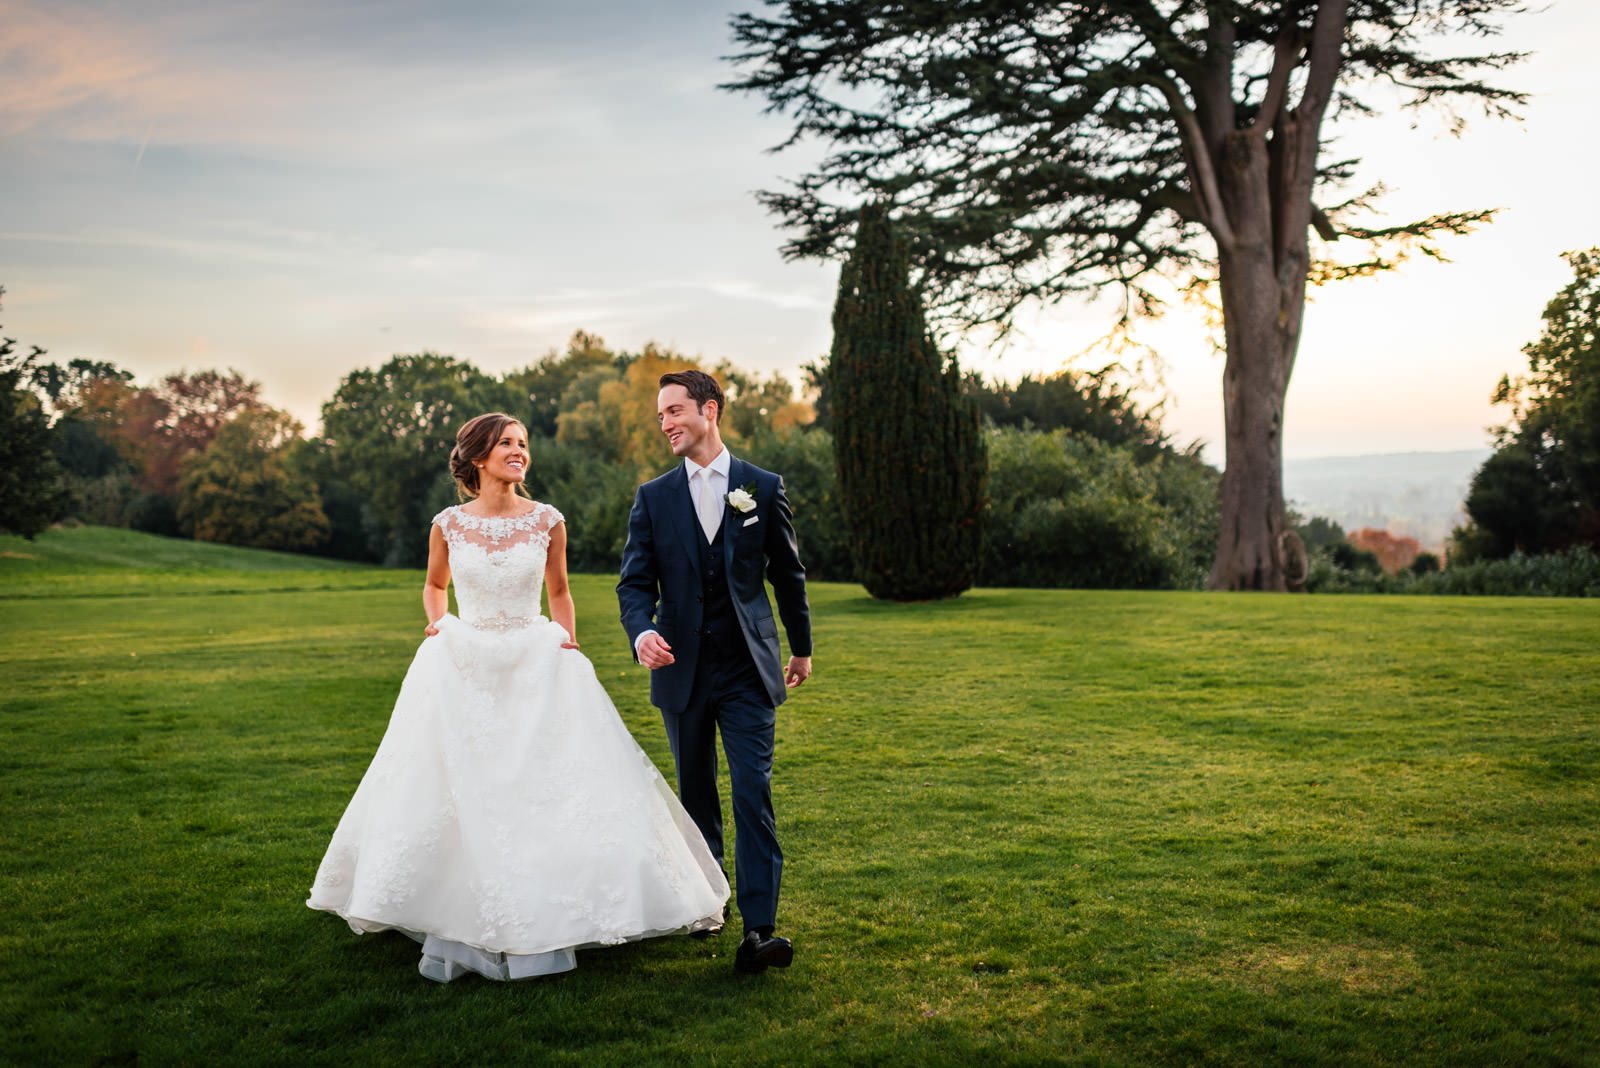 Relaxed bride and groom portrait at Hedsor House